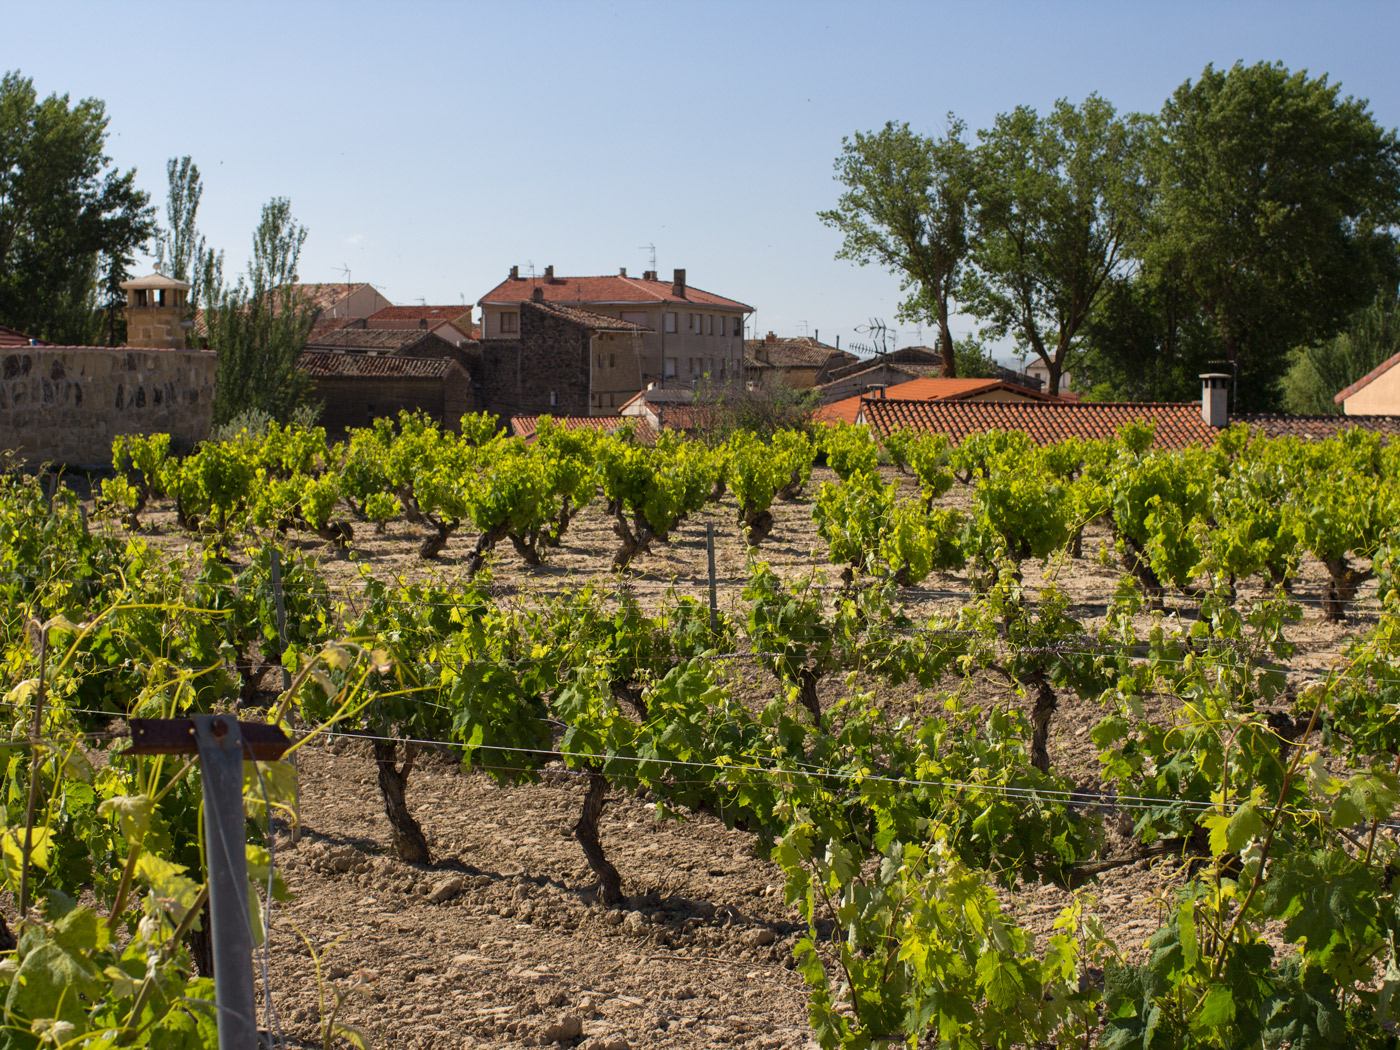 Old vineyards at Bodegas Castillo de Sajazarra in Rioja Alta